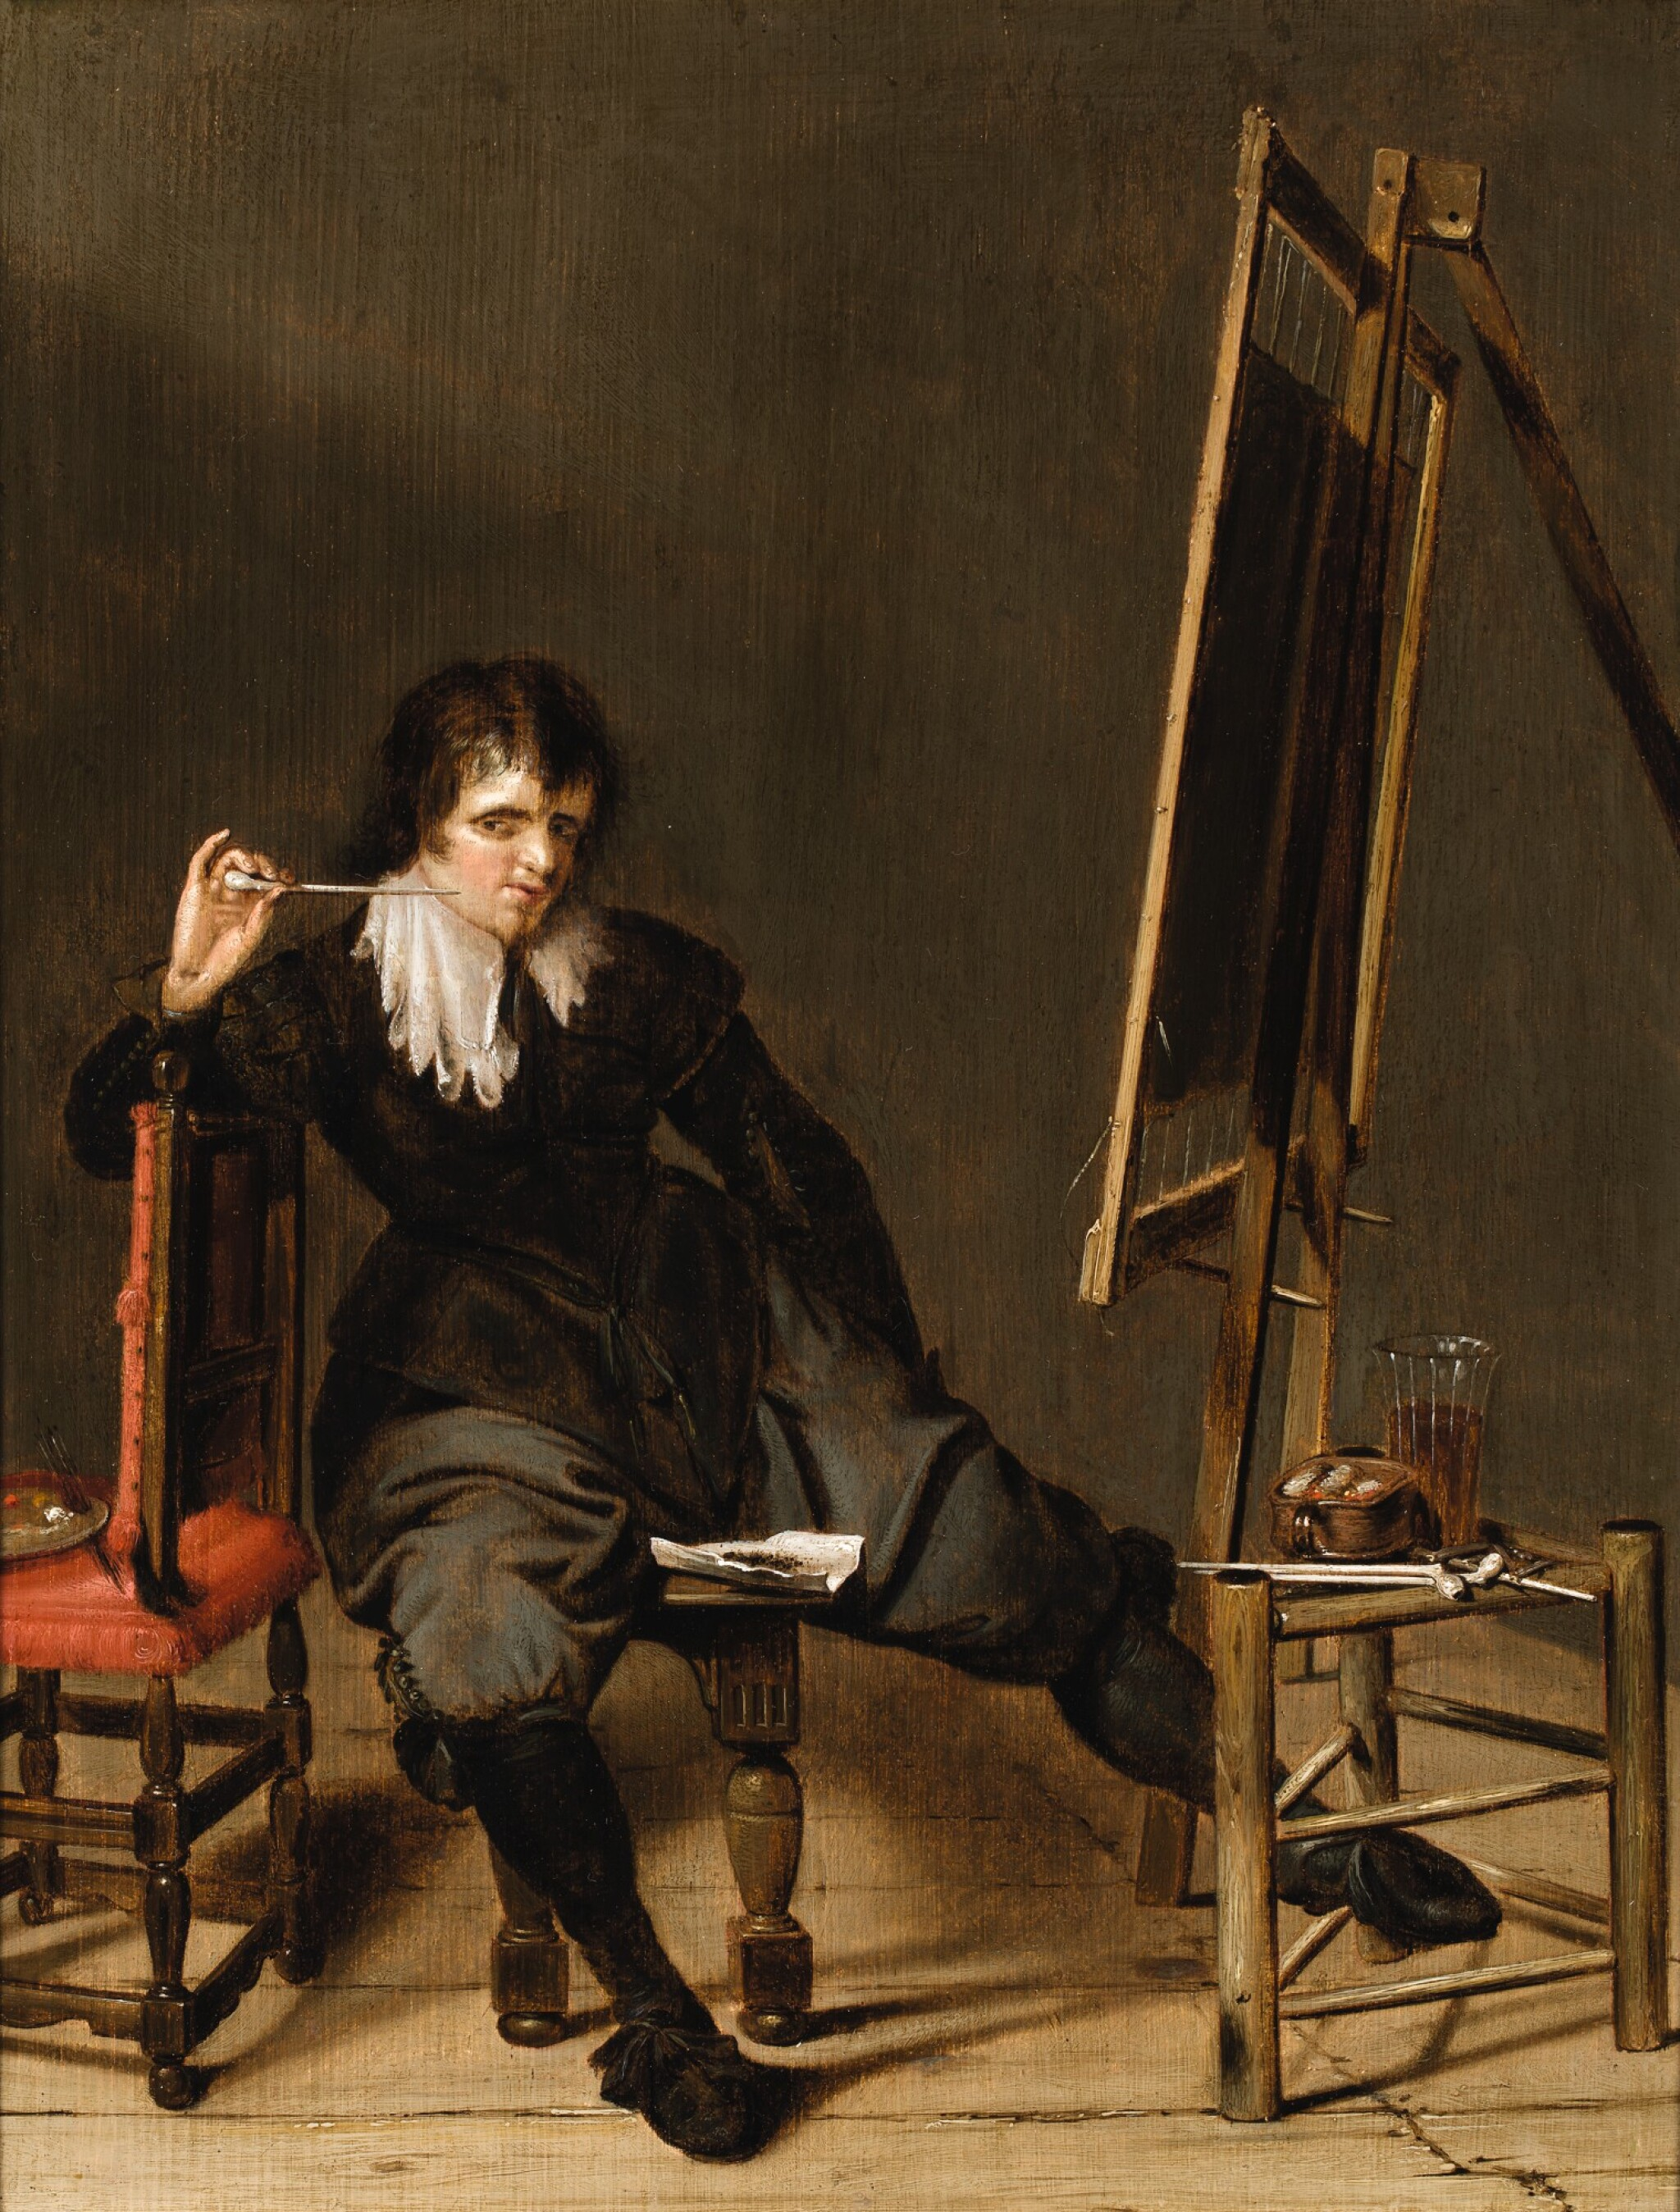 View full screen - View 1 of Lot 103. PIETER CODDE  |  AN ARTIST IN HIS STUDIO, SEATED ON A STOOL, IN FRONT OF AN EASEL, WITH A PIPE RAISED TO HIS MOUTH.